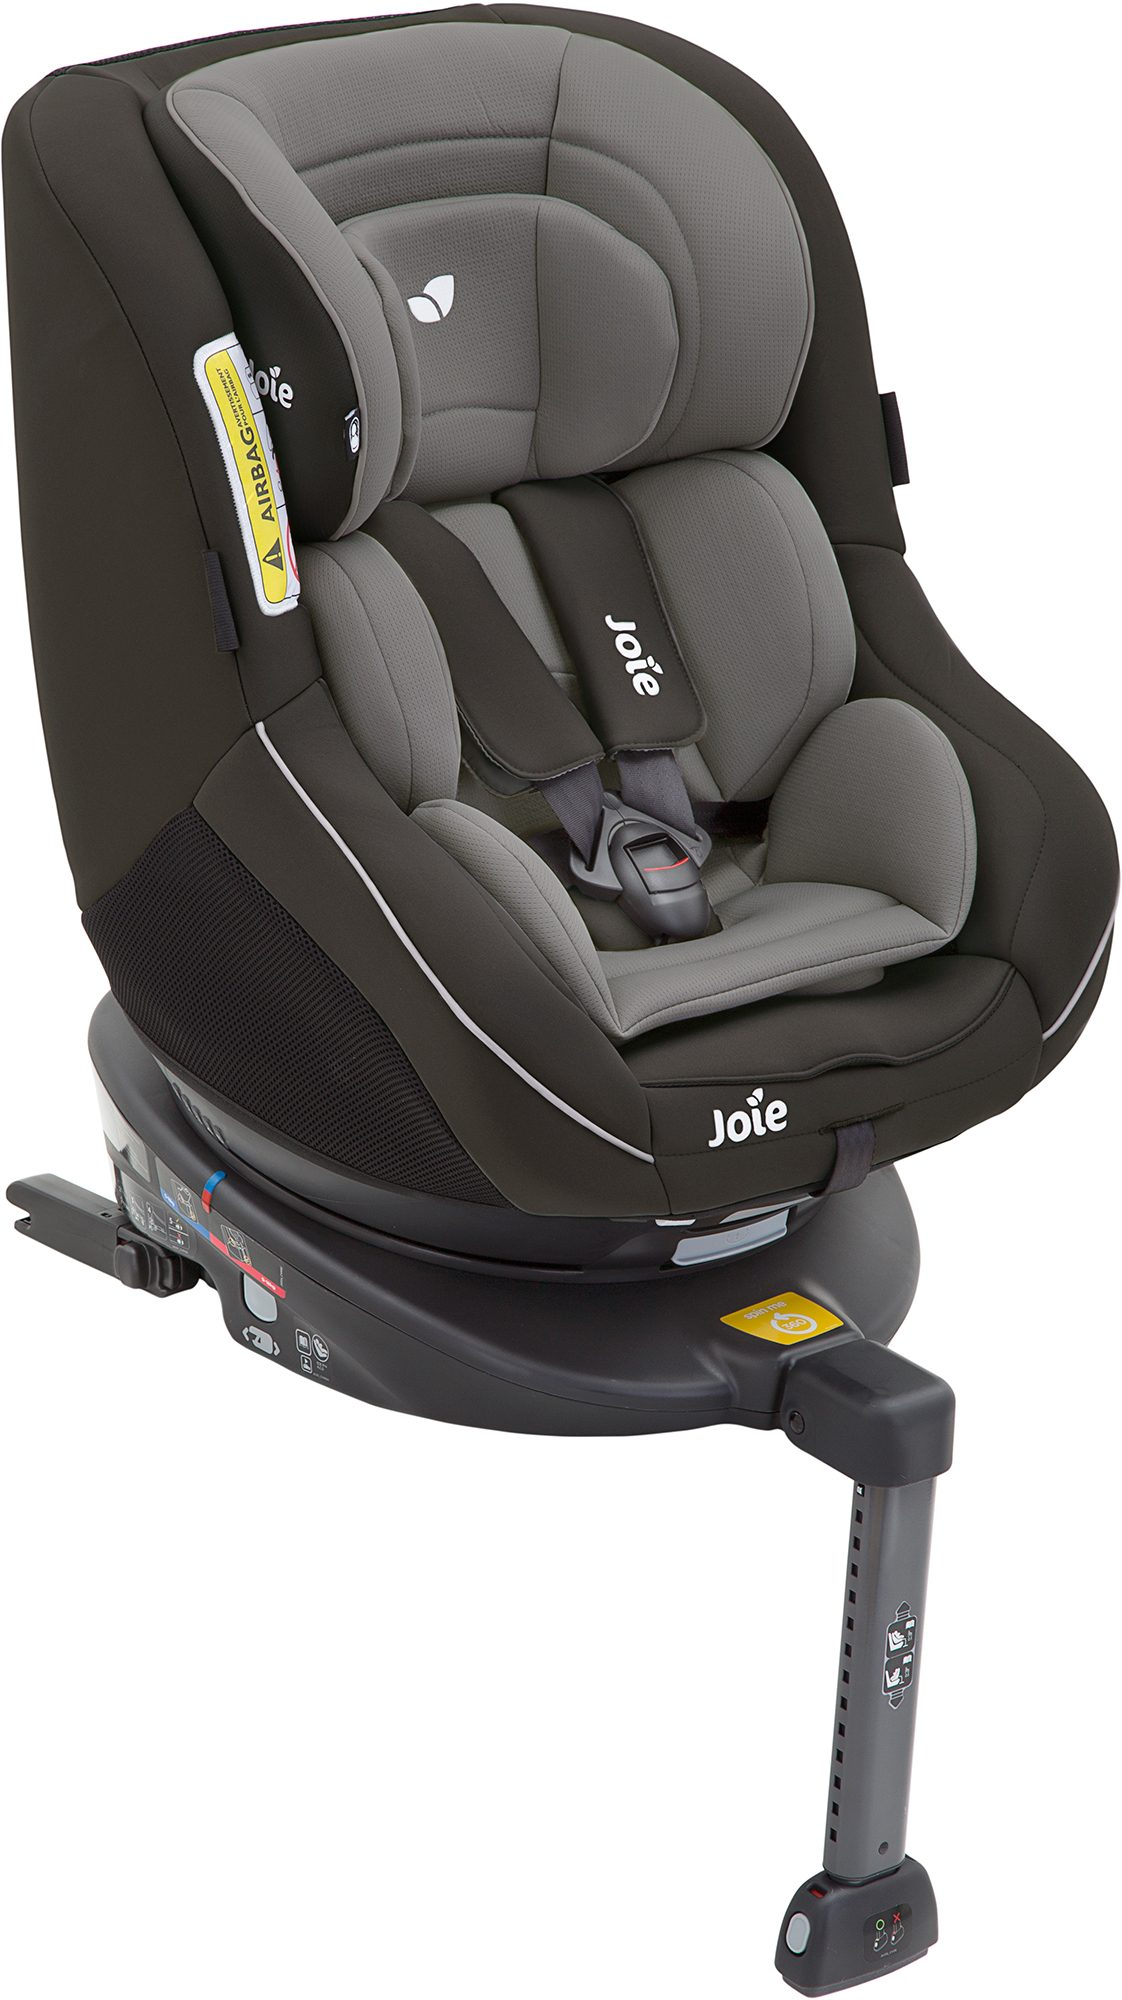 Rear Facing Spinning Car Seat